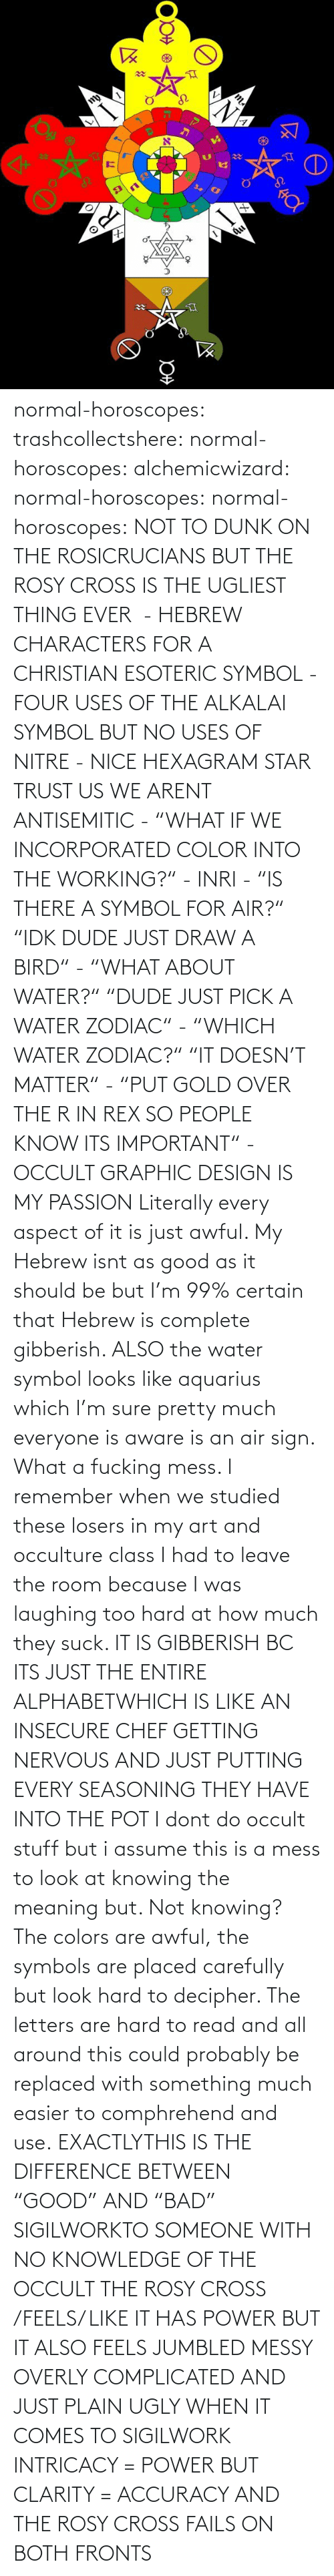 "Stuff: normal-horoscopes:  trashcollectshere: normal-horoscopes:   alchemicwizard:  normal-horoscopes:  normal-horoscopes: NOT TO DUNK ON THE ROSICRUCIANS BUT THE ROSY CROSS IS THE UGLIEST THING EVER  - HEBREW CHARACTERS FOR A CHRISTIAN ESOTERIC SYMBOL - FOUR USES OF THE ALKALAI SYMBOL BUT NO USES OF NITRE - NICE HEXAGRAM STAR TRUST US WE ARENT ANTISEMITIC - ""WHAT IF WE INCORPORATED COLOR INTO THE WORKING?"" - INRI - ""IS THERE A SYMBOL FOR AIR?"" ""IDK DUDE JUST DRAW A BIRD"" - ""WHAT ABOUT WATER?"" ""DUDE JUST PICK A WATER ZODIAC"" - ""WHICH WATER ZODIAC?"" ""IT DOESN'T MATTER"" - ""PUT GOLD OVER THE R IN REX SO PEOPLE KNOW ITS IMPORTANT"" - OCCULT GRAPHIC DESIGN IS MY PASSION  Literally every aspect of it is just awful. My Hebrew isnt as good as it should be but I'm 99% certain that Hebrew is complete gibberish.  ALSO the water symbol looks like aquarius which I'm sure pretty much everyone is aware is an air sign. What a fucking mess.  I remember when we studied these losers in my art and occulture class I had to leave the room because I was laughing too hard at how much they suck.   IT IS GIBBERISH BC ITS JUST THE ENTIRE ALPHABETWHICH IS LIKE AN INSECURE CHEF GETTING NERVOUS AND JUST PUTTING EVERY SEASONING THEY HAVE INTO THE POT     I dont do occult stuff but i assume this is a mess to look at knowing the meaning but. Not knowing? The colors are awful, the symbols are placed carefully but look hard to decipher. The letters are hard to read and all around this could probably be replaced with something much easier to comphrehend and use.  EXACTLYTHIS IS THE DIFFERENCE BETWEEN ""GOOD"" AND ""BAD"" SIGILWORKTO SOMEONE WITH NO KNOWLEDGE OF THE OCCULT THE ROSY CROSS /FEELS/ LIKE IT HAS POWER BUT IT ALSO FEELS JUMBLED MESSY OVERLY COMPLICATED AND JUST PLAIN UGLY WHEN IT COMES TO SIGILWORK INTRICACY = POWER BUT CLARITY = ACCURACY AND THE ROSY CROSS FAILS ON BOTH FRONTS"